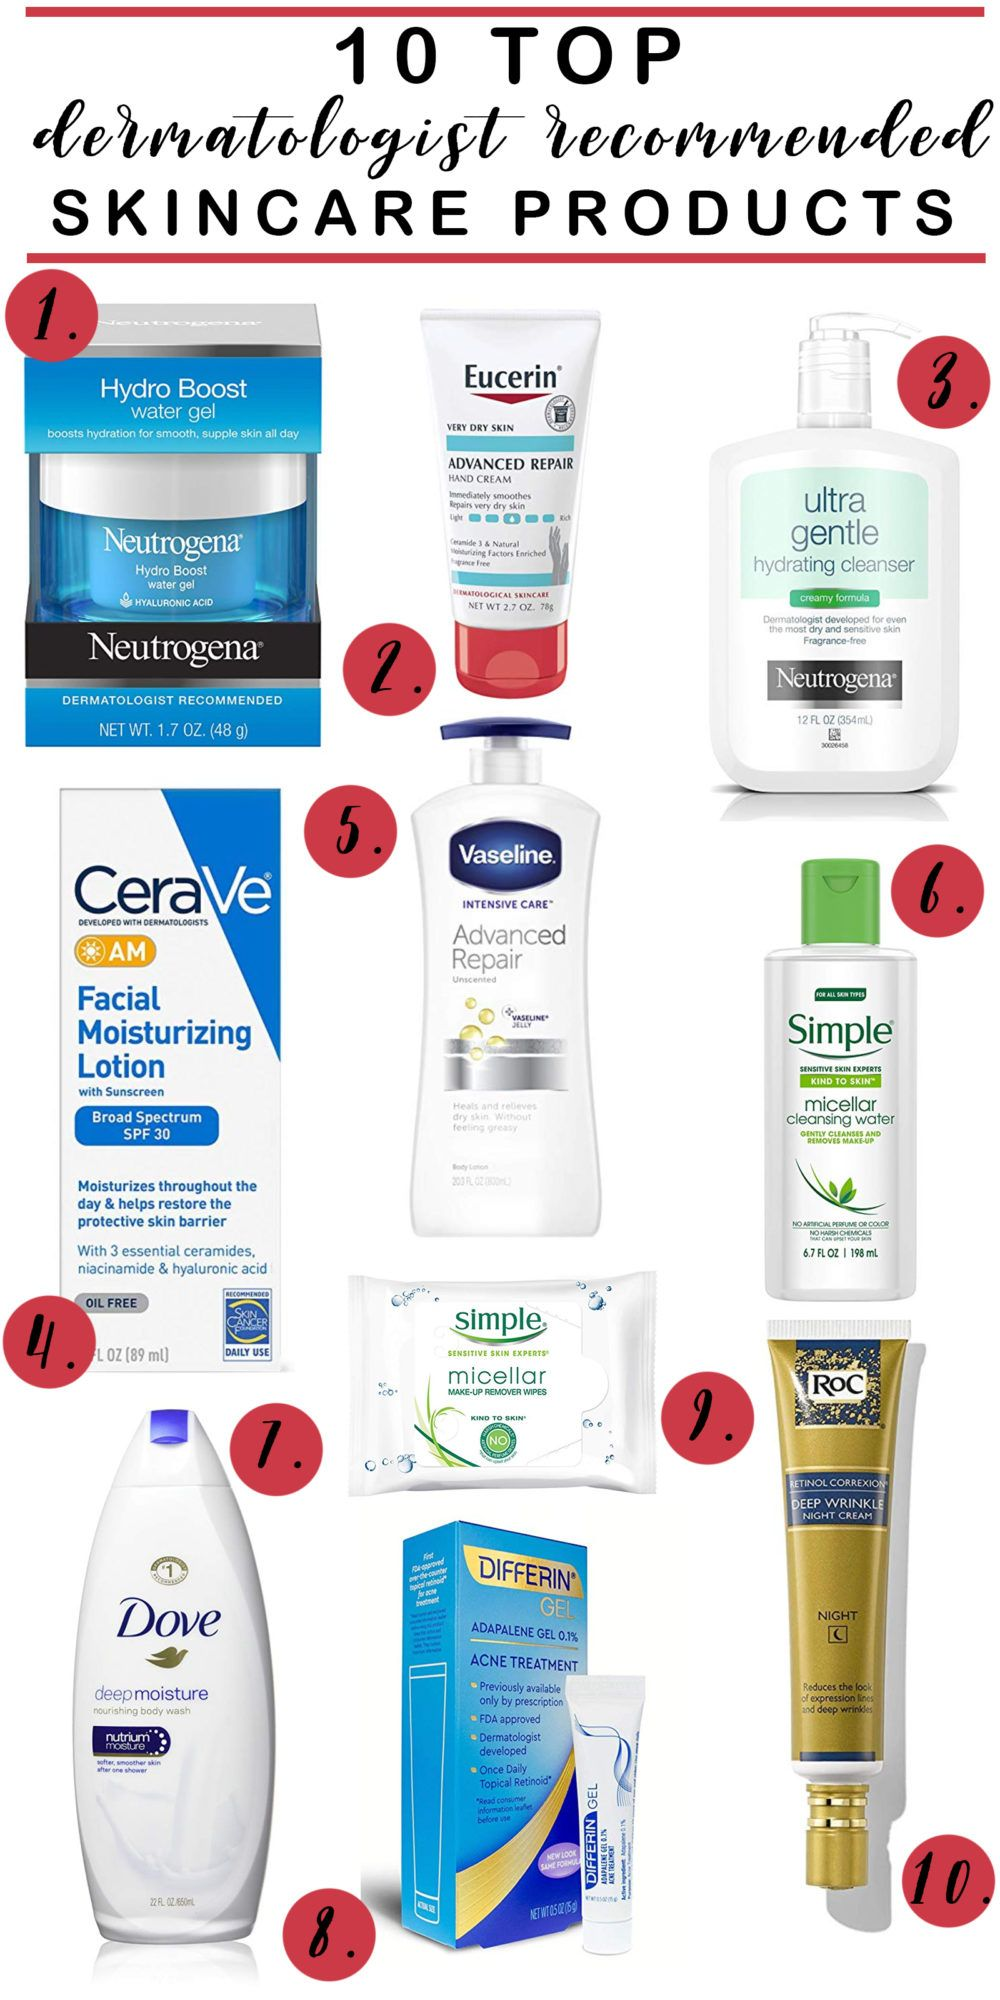 10 Top Dermatologist Recommended Drugstore Skincare Products In